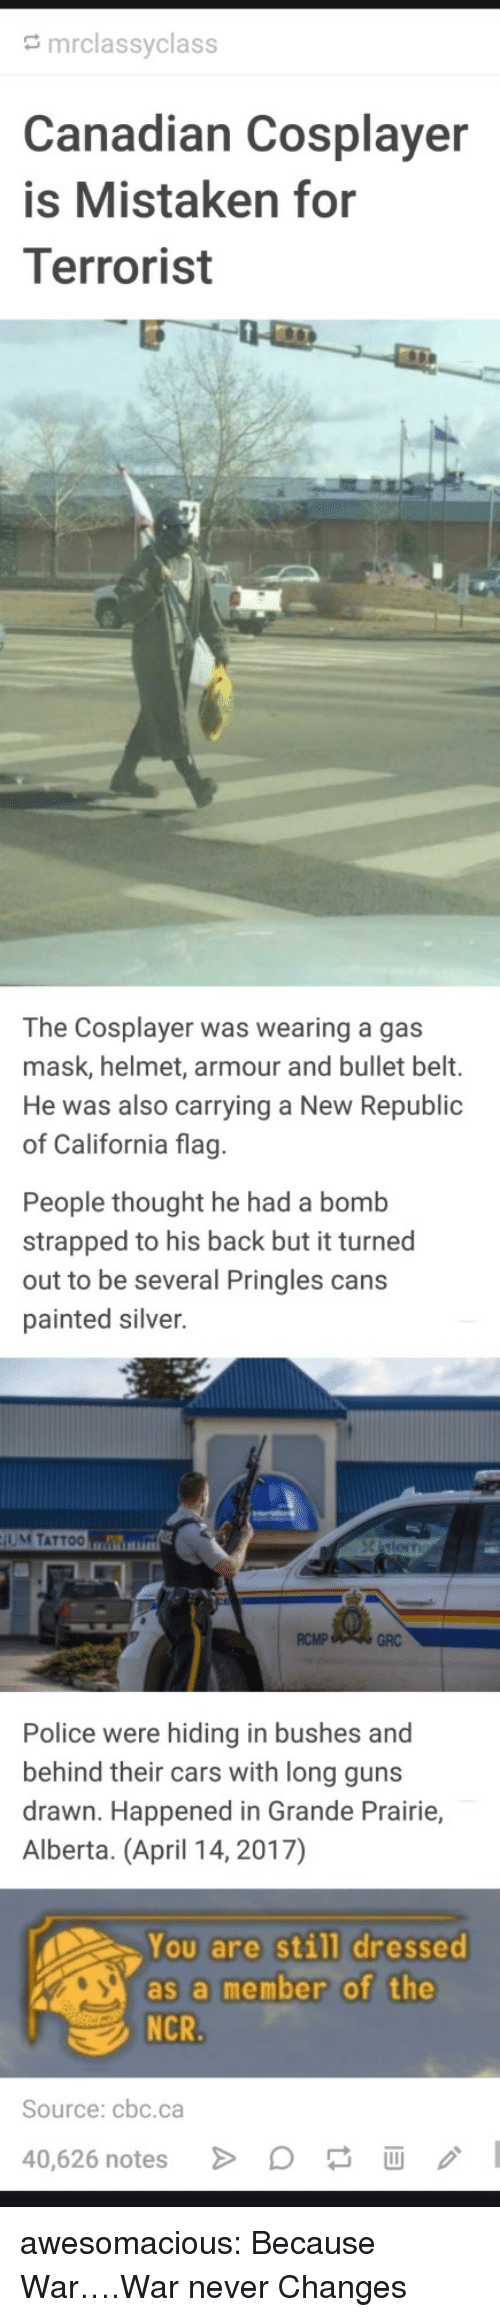 Cars, Guns, and Police: mrclassyclass  anadian Cosplayer  is Mistaken for  Terrorist  The Cosplayer was wearing a gas  mask, helmet, armour and bullet belt.  He was also carrying a New Republic  of California flag  People thought he had a bomb  strapped to his back but it turned  out to be several Pringles cans  painted silver.  UM TATTOO  RCMP  GRC  Police were hiding in bushes and  behind their cars with long guns  drawn. Happened in Grande Prairie,  Alberta. (April 14, 2017)  You are still dressed  as a member of the  Source: cbc.ca  40,626 notes awesomacious:  Because War….War never Changes